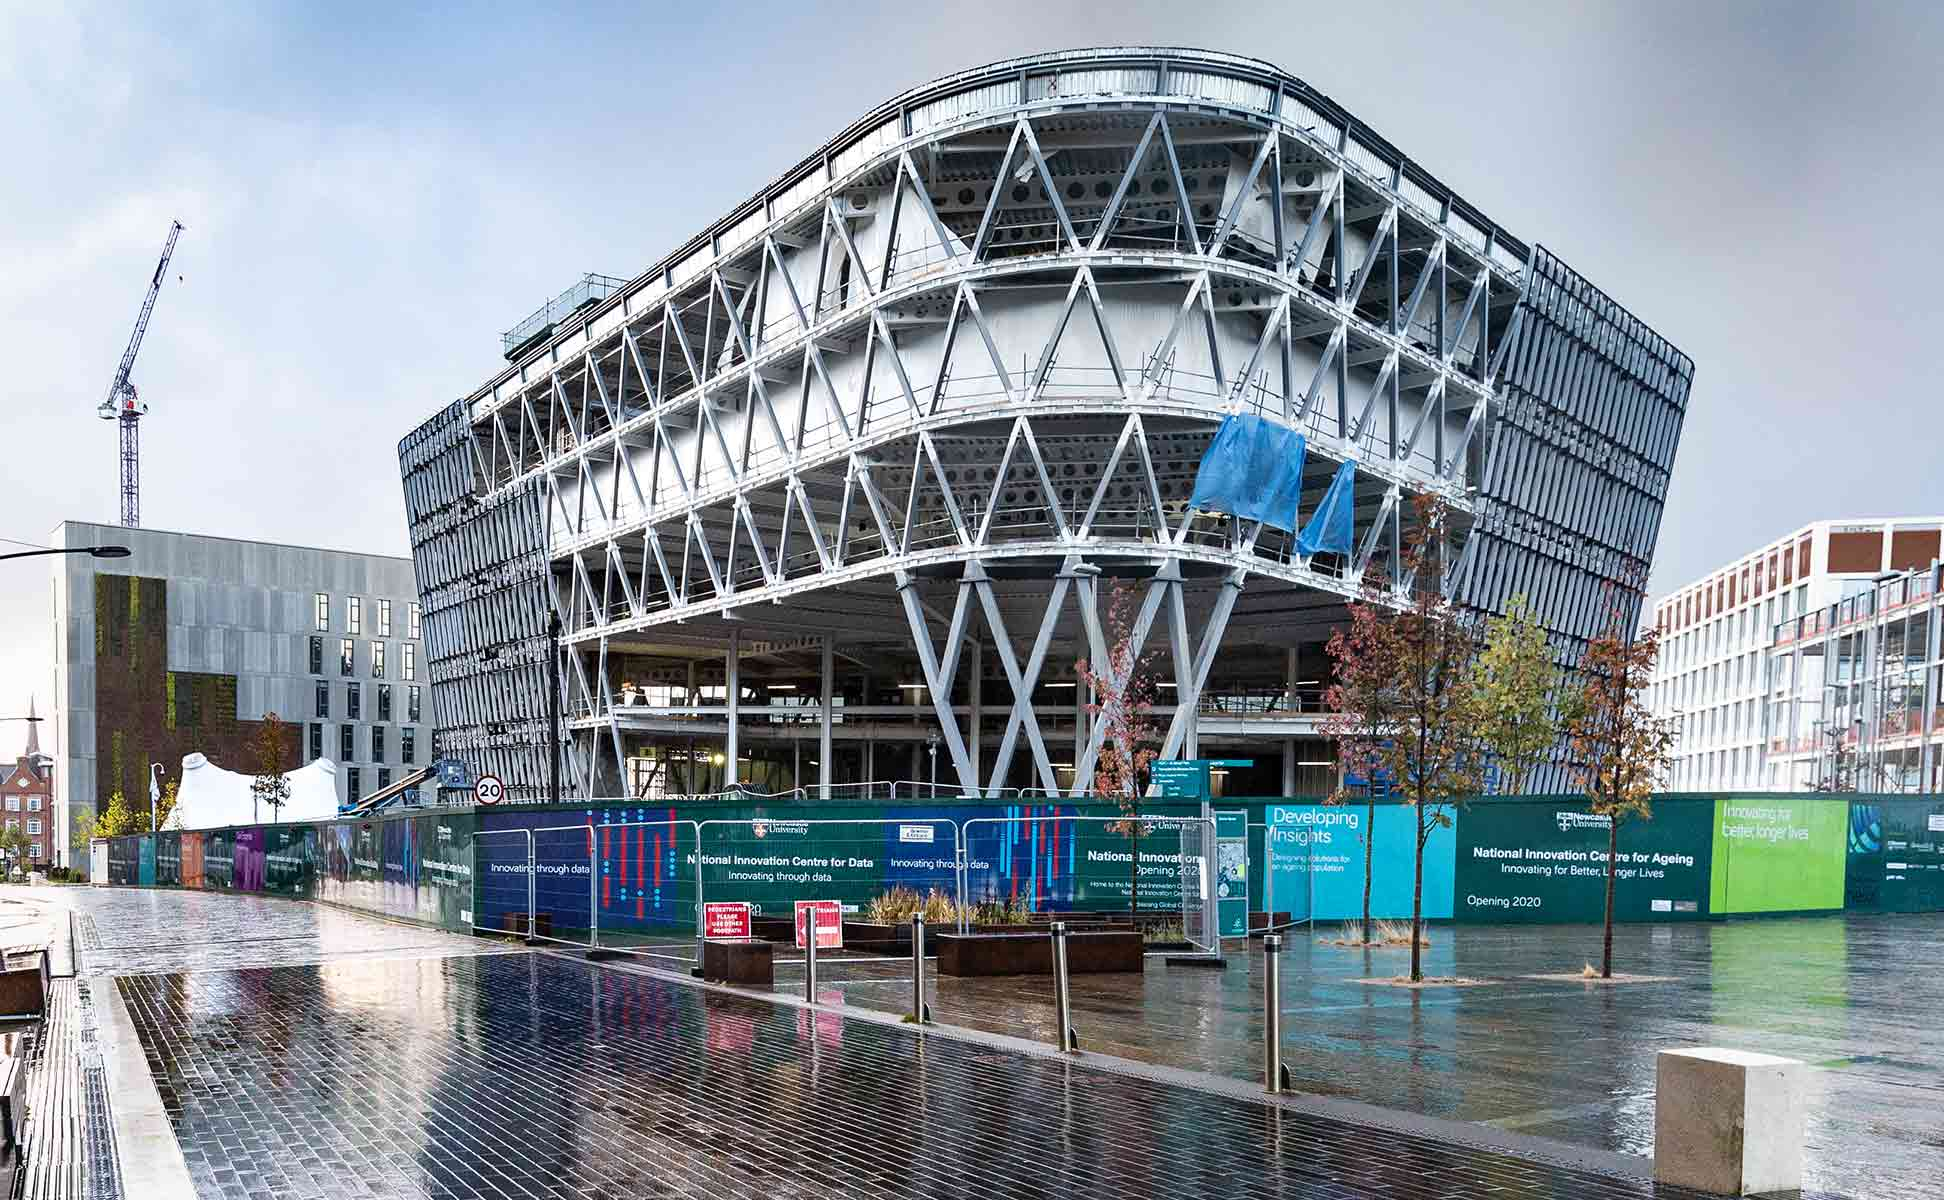 Construction photograph showing -the National-Innovation-Centre-Newcastle in the rain